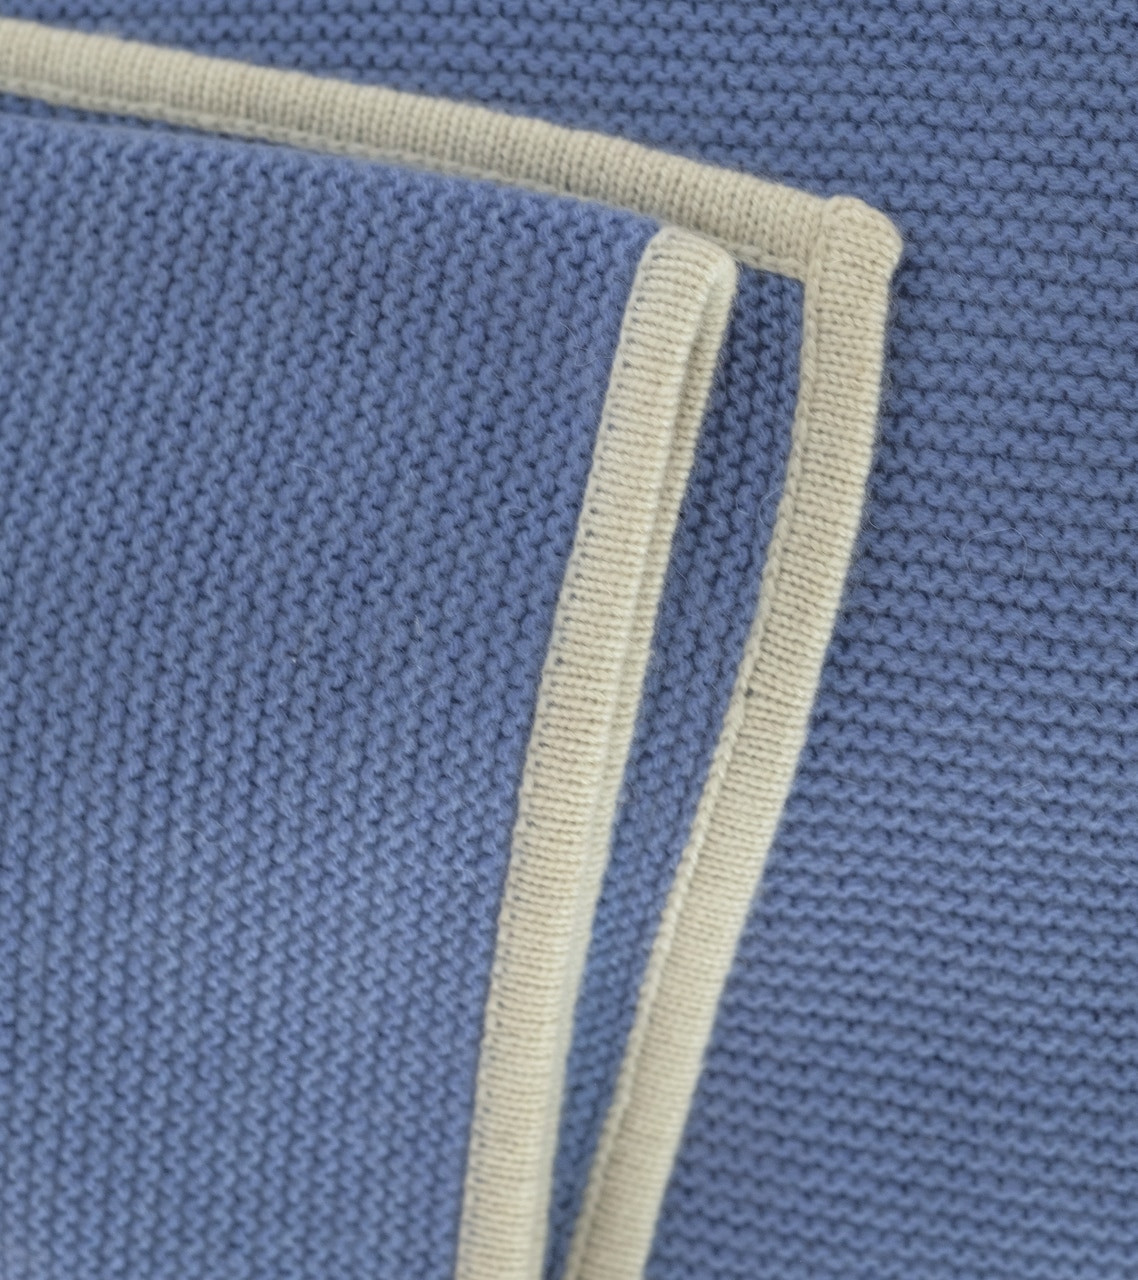 Periwinkle & Cream Purl Knit Cashmere Throw